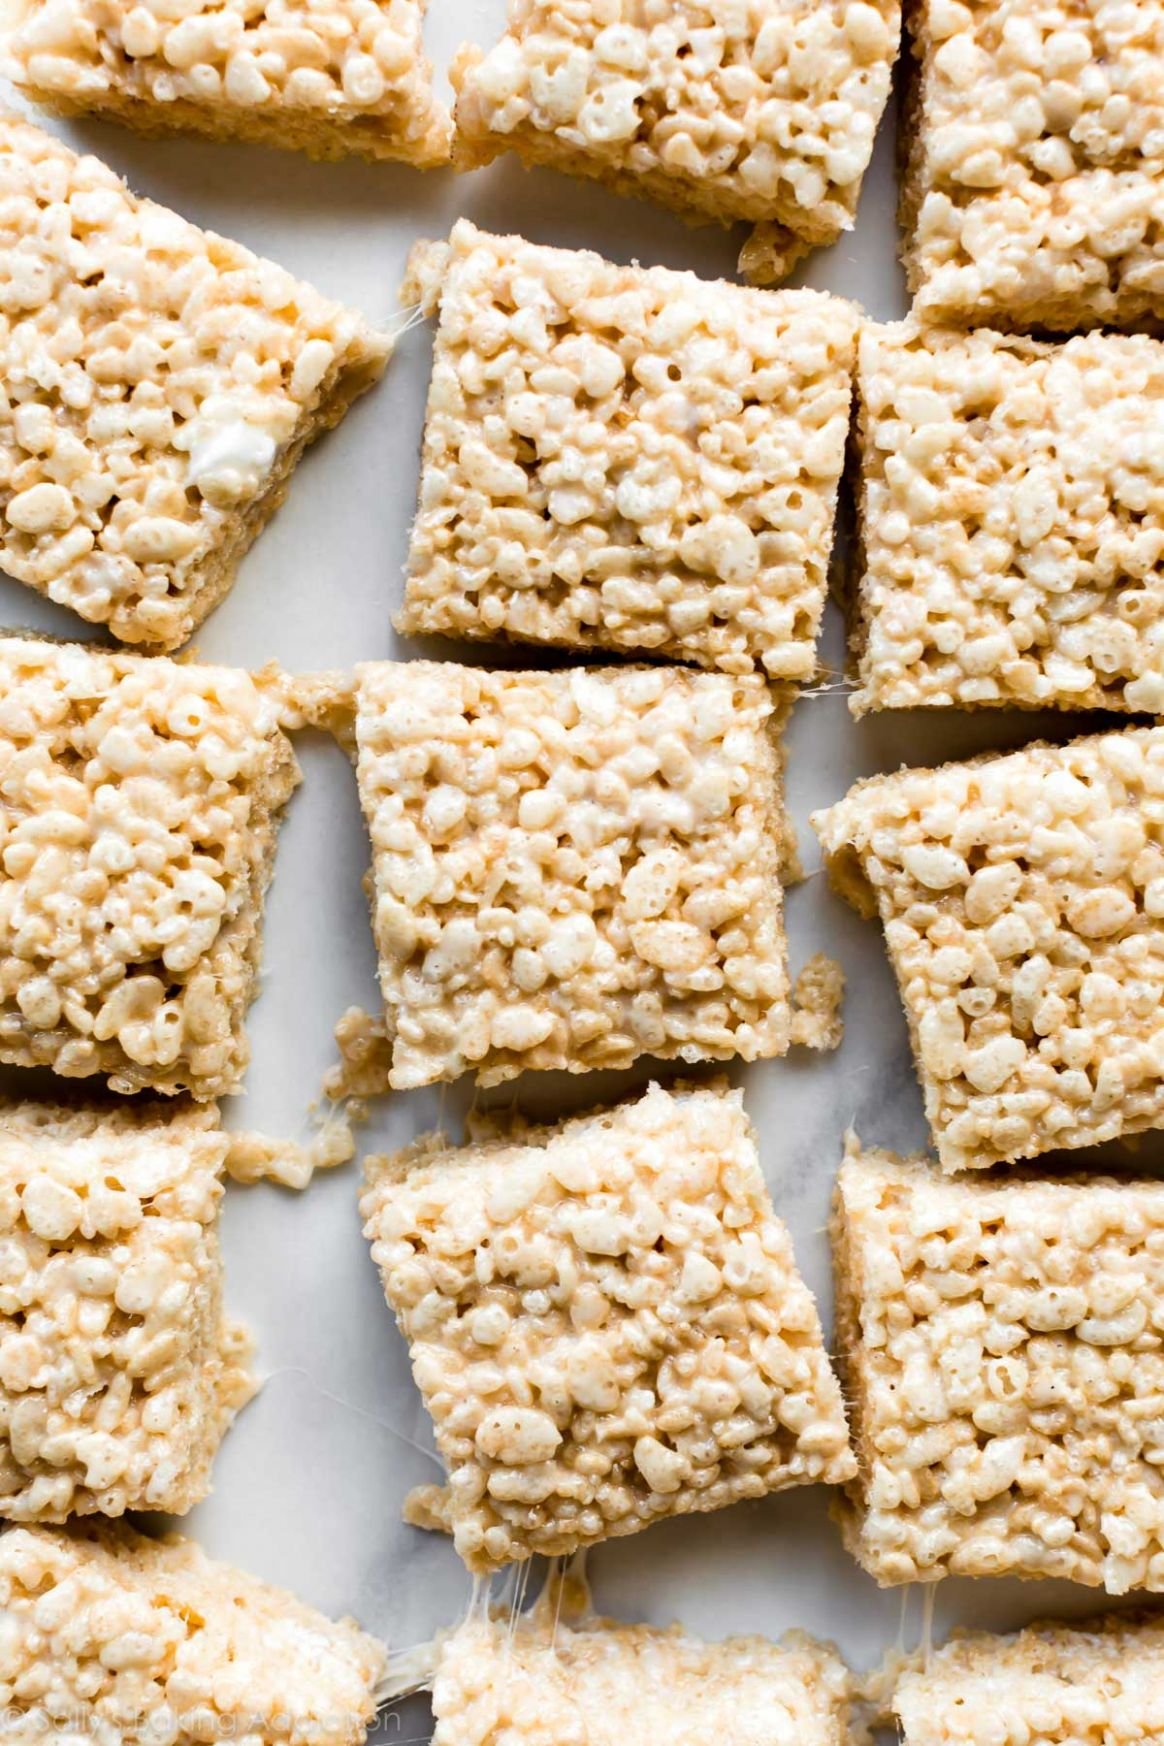 Our Favorite Rice Krispie Treats - Recipes Using Rice Krispies